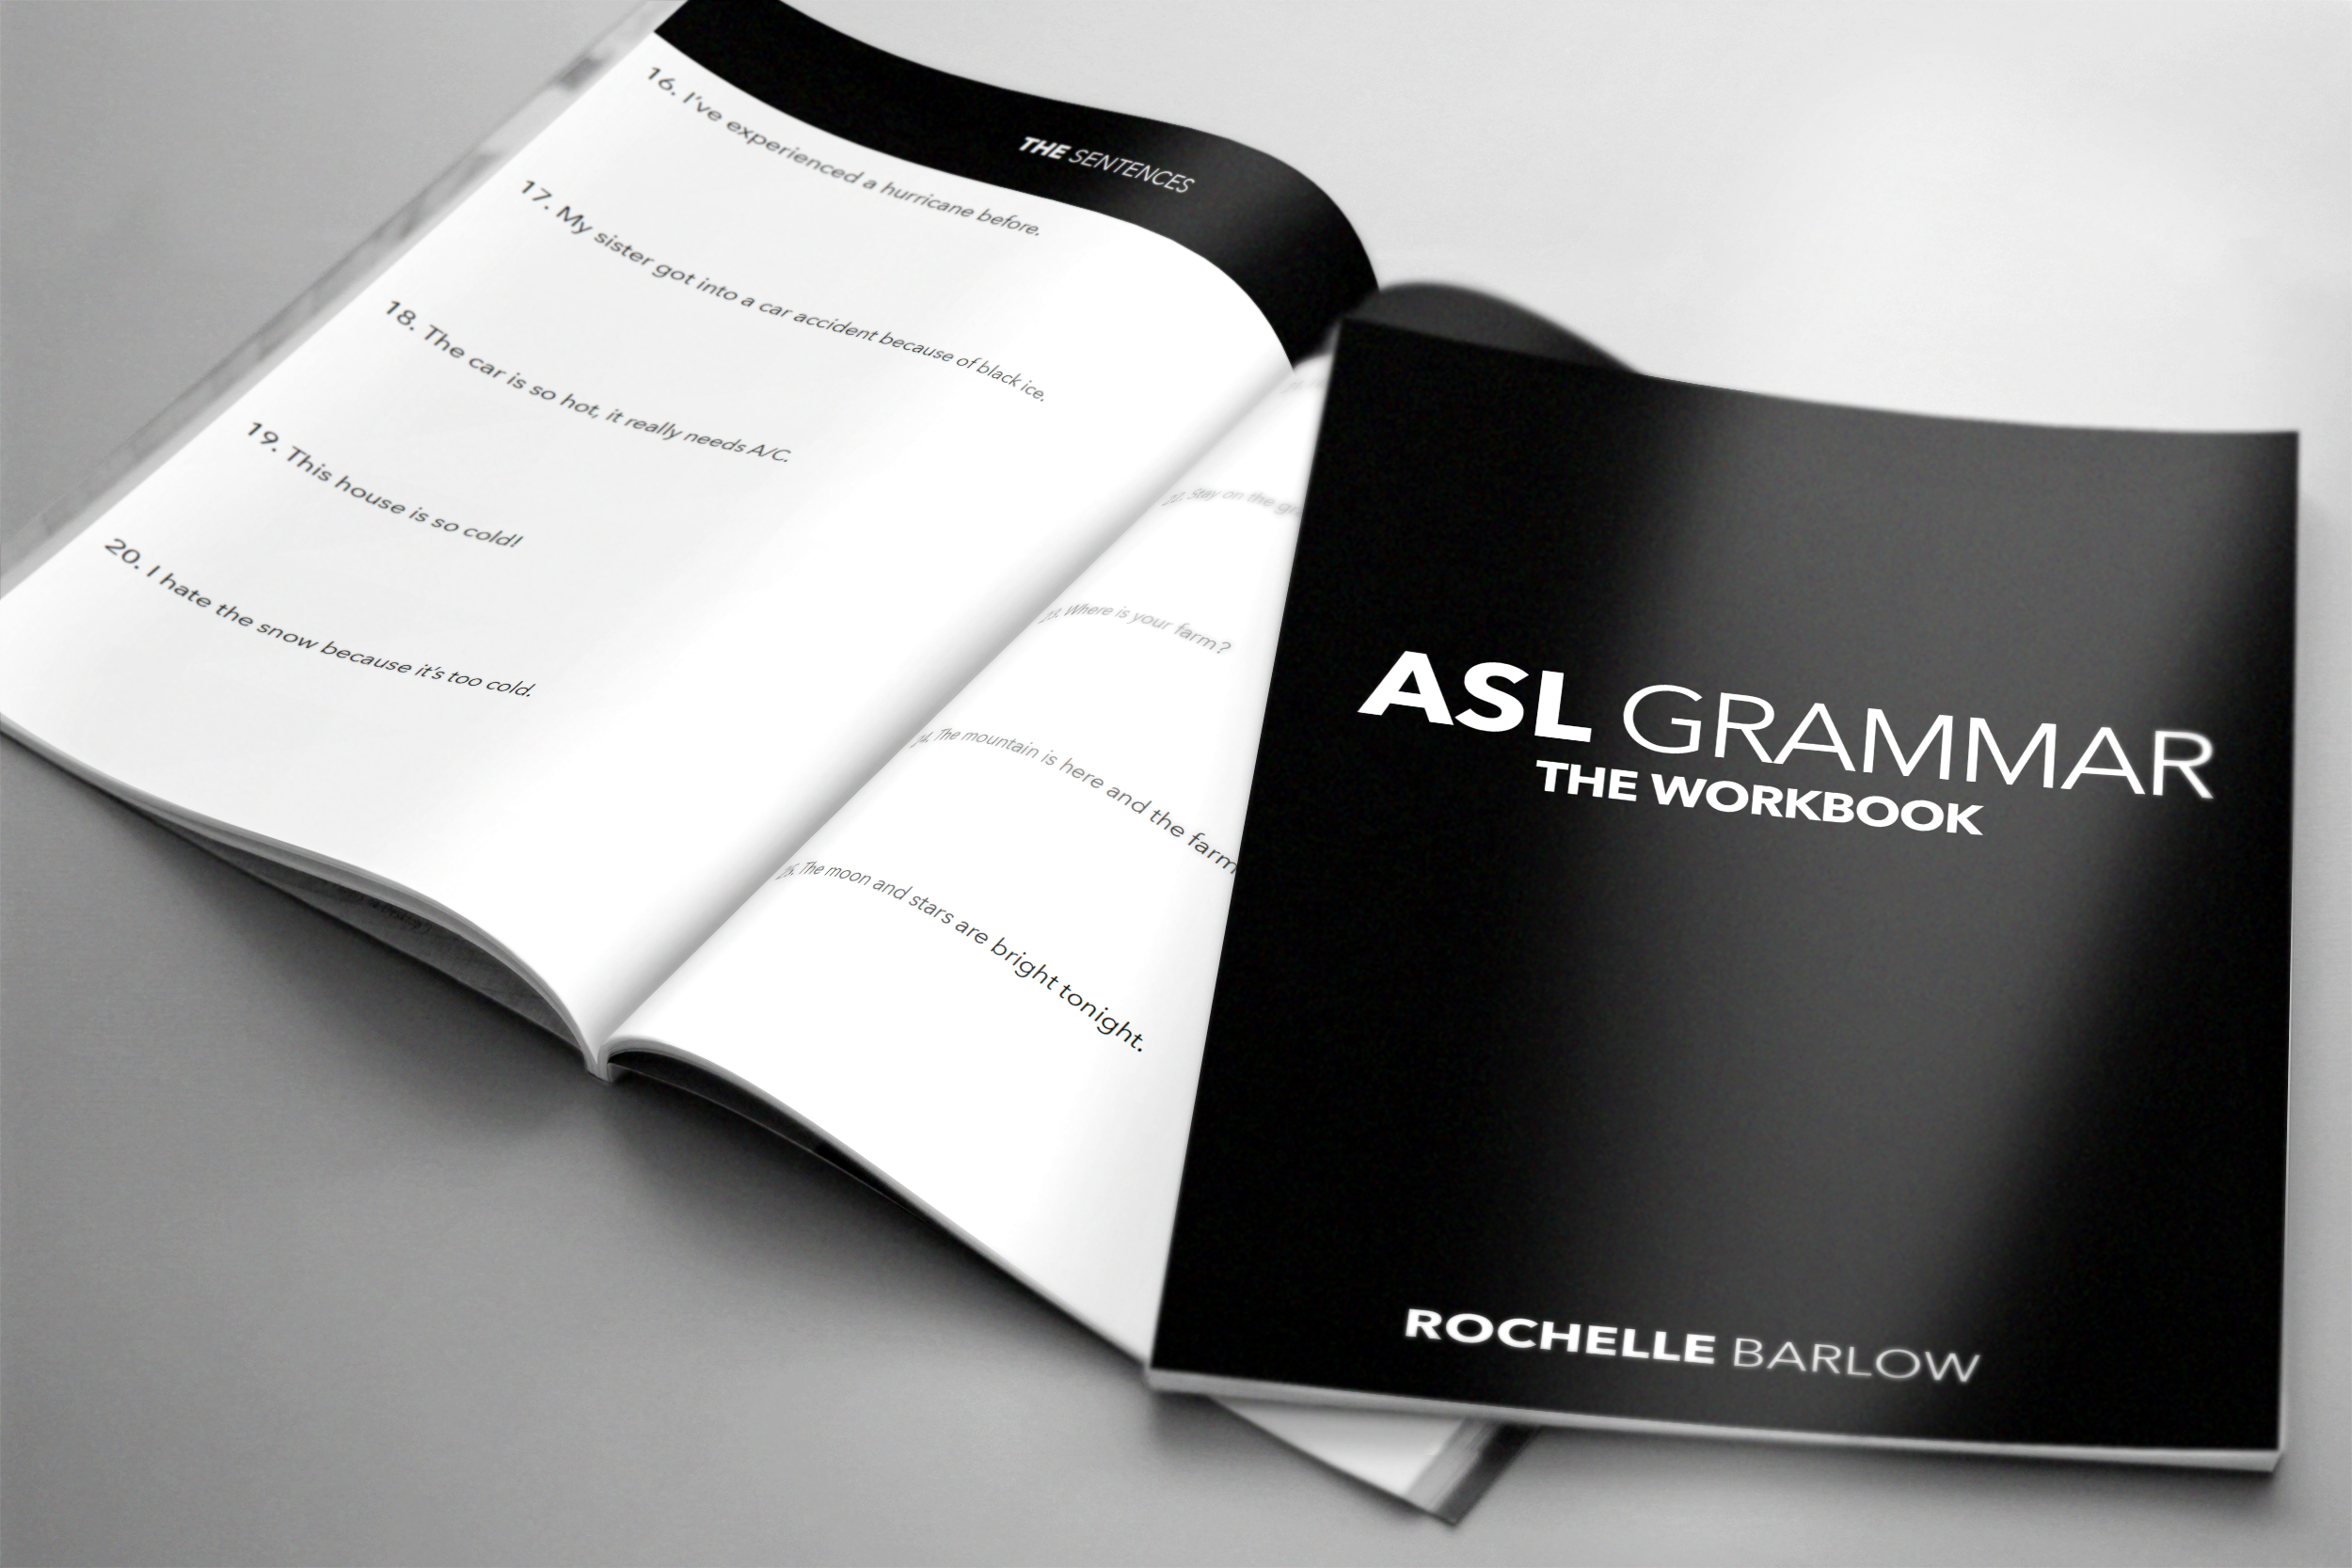 ASL Grammar The Workbook